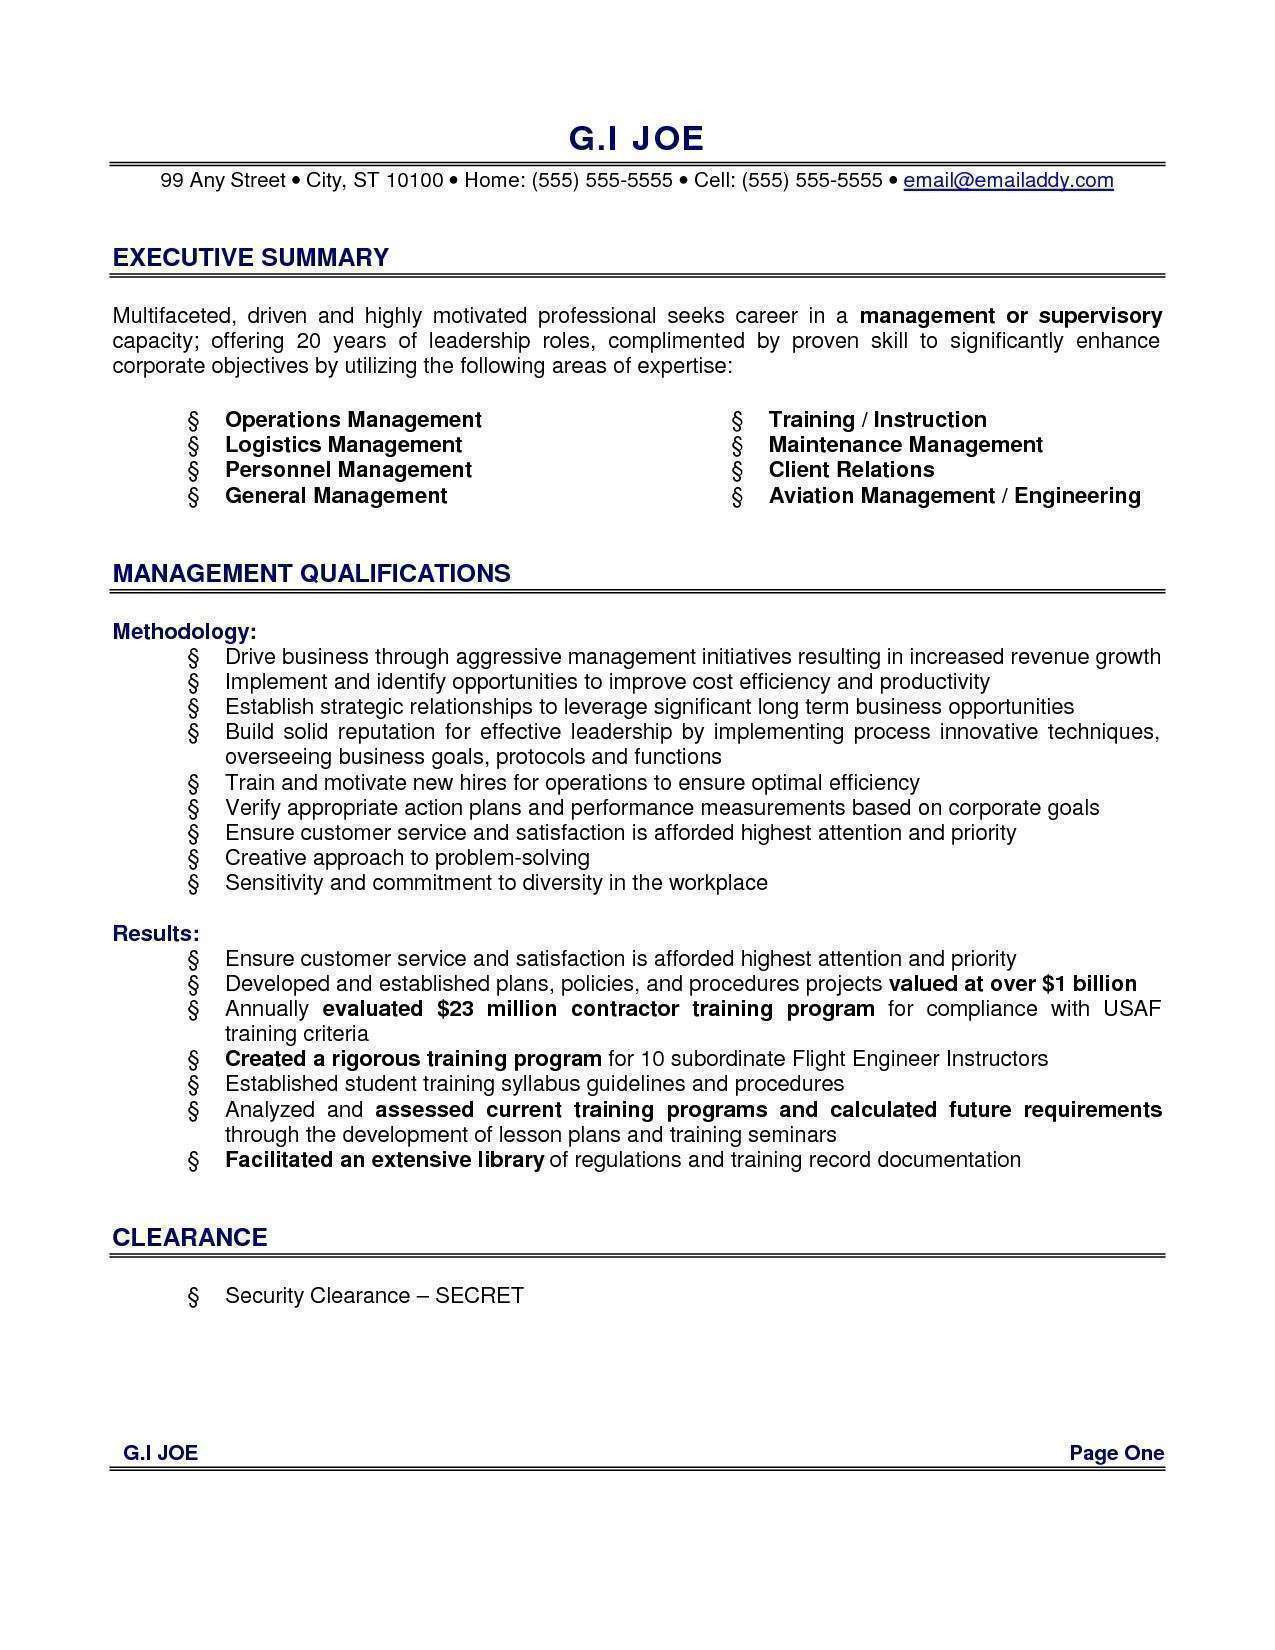 Resume Template for Sales Manager - Newer Sample Resume for Risk Management Job All It Manager Template